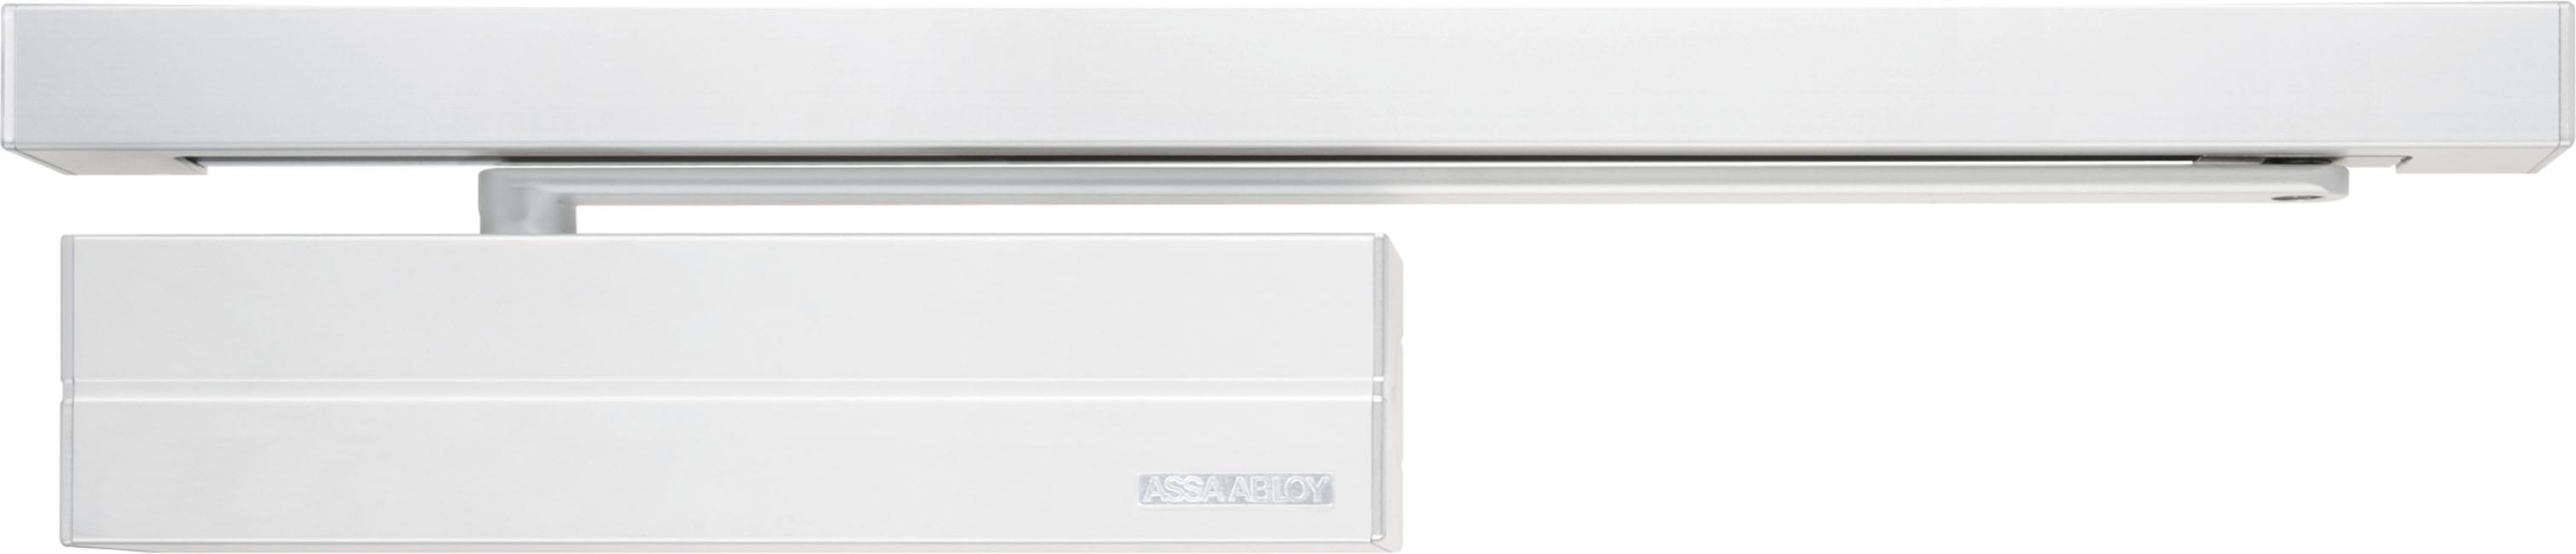 DC700G-E  - DC700G-E - Door Closer